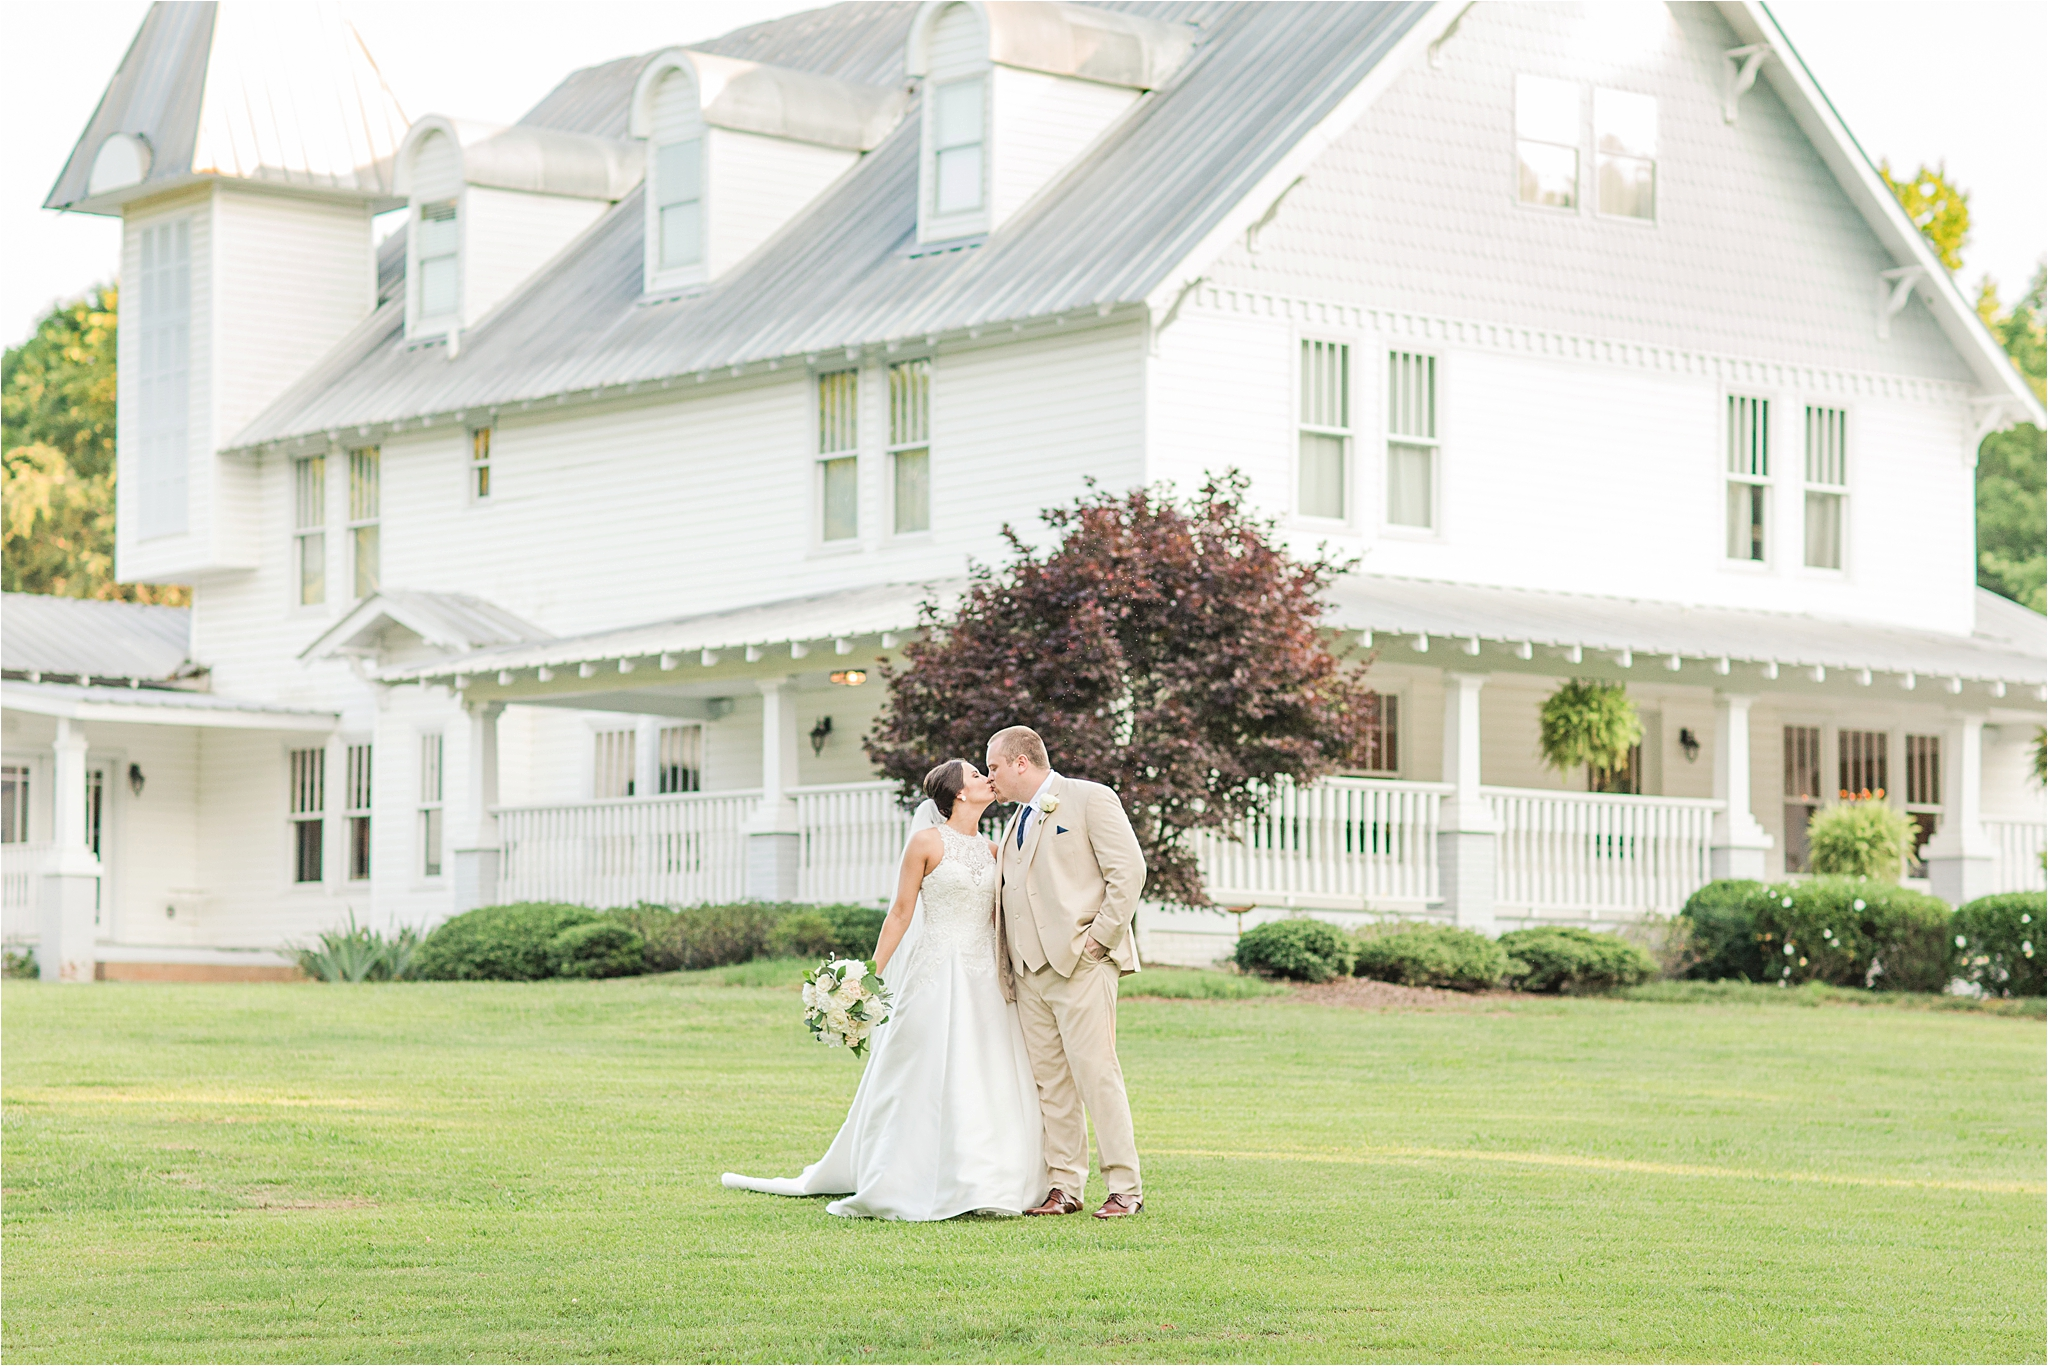 Sonnet House | Birmingham Alabama Wedding Photographer |